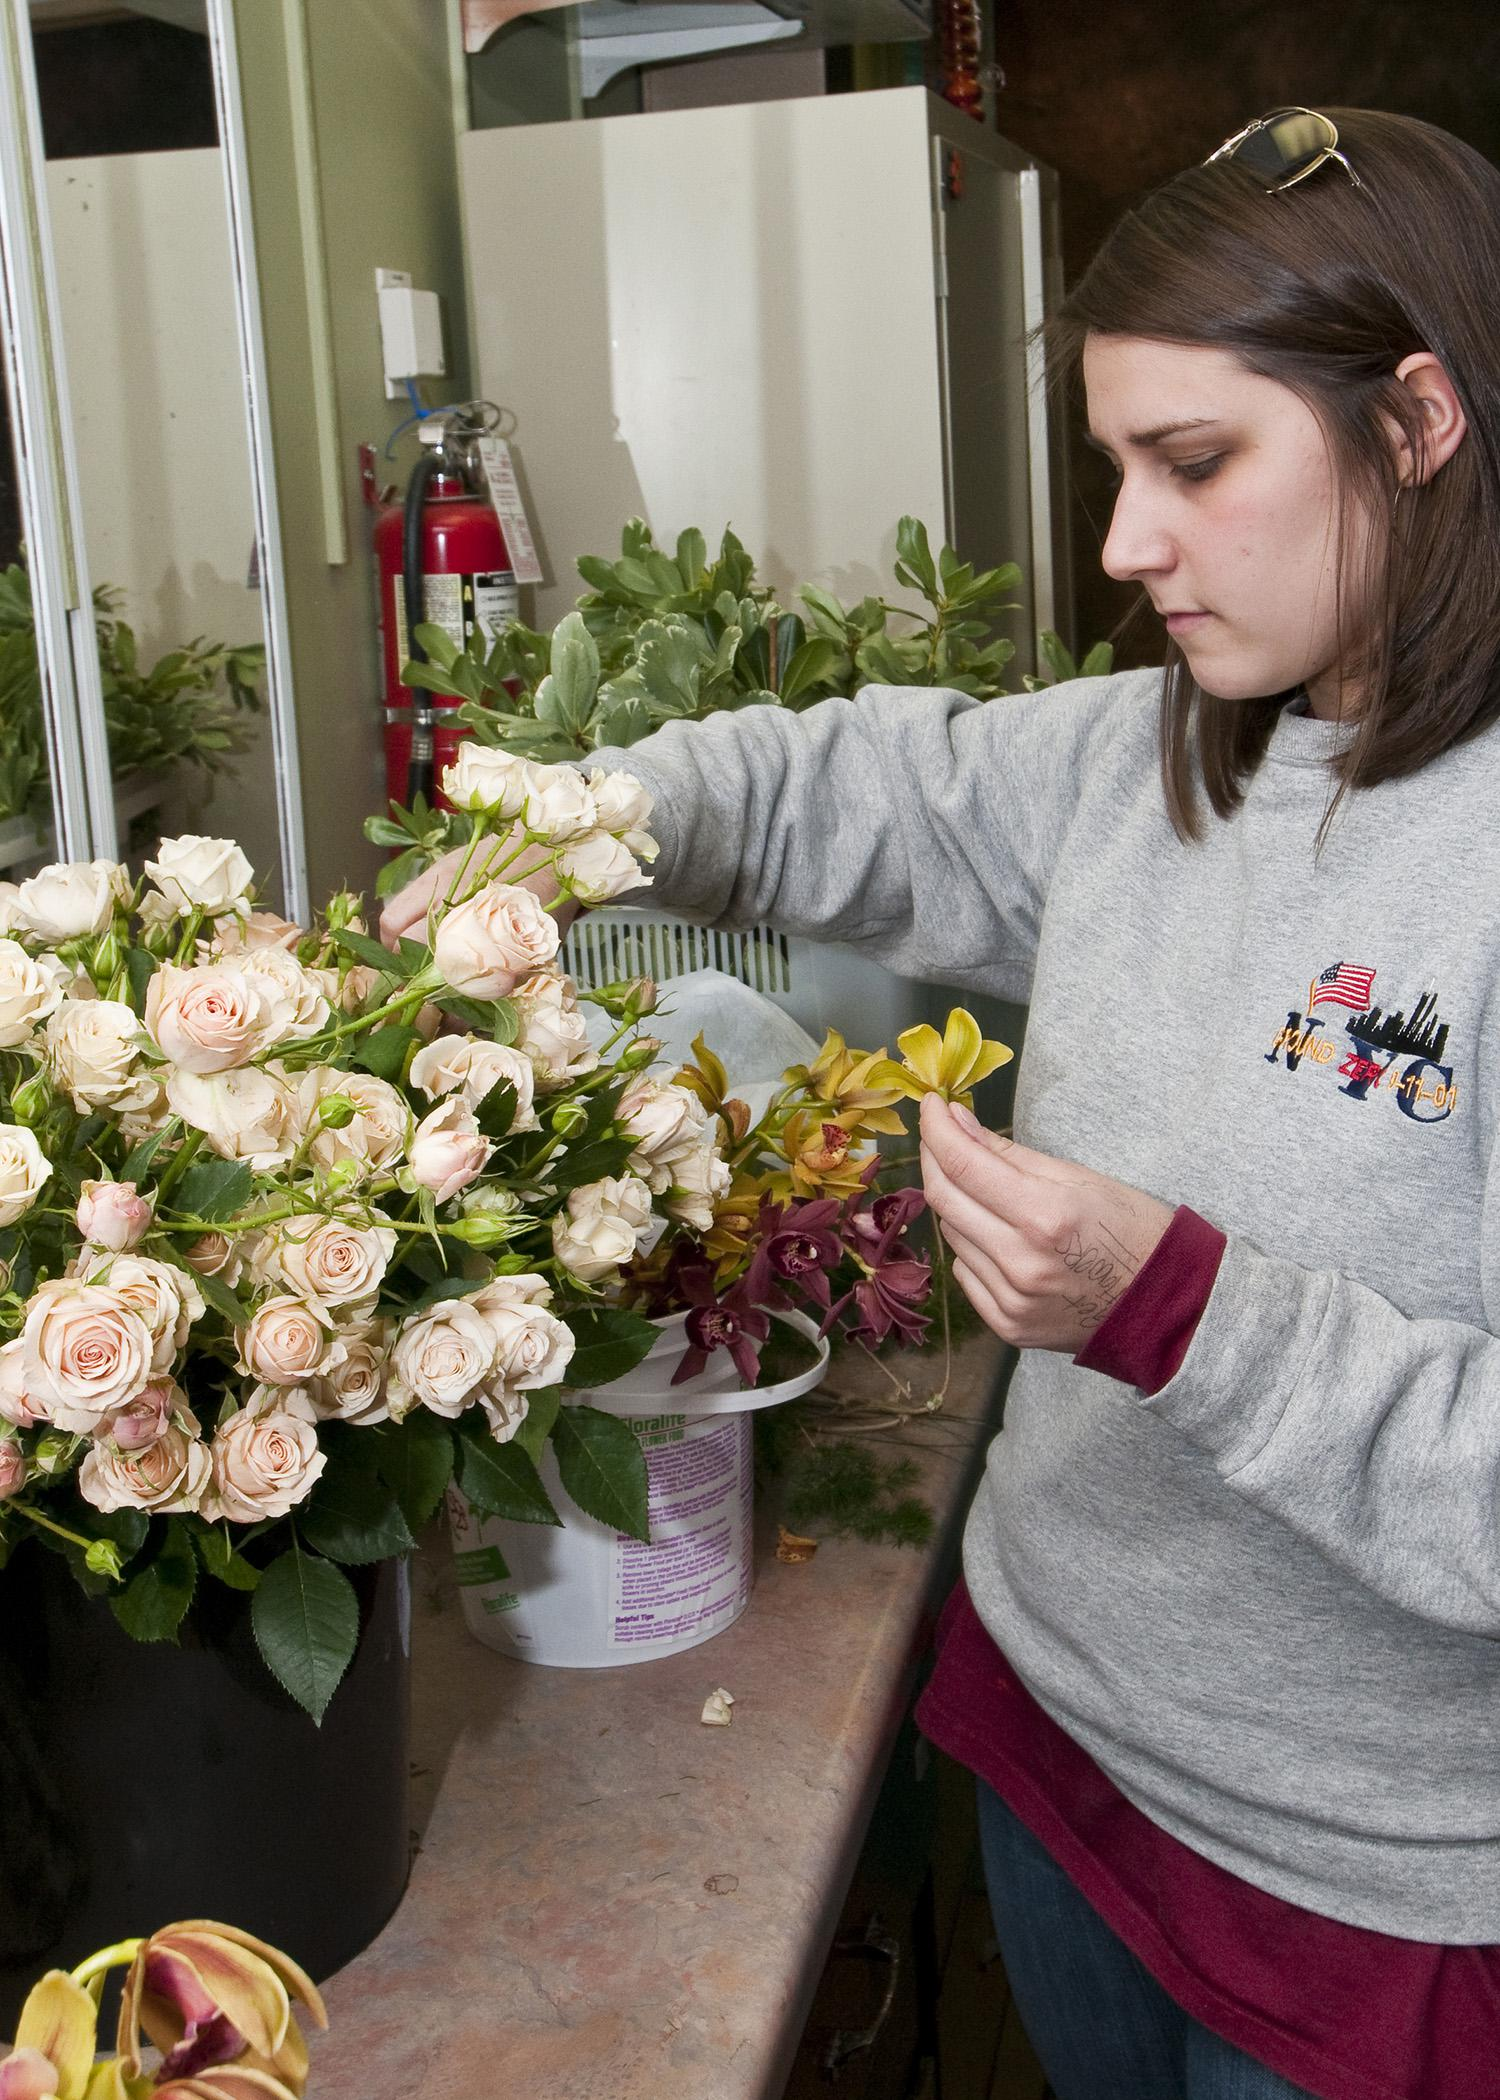 A good florist will help make decisions on what flowers and colors to include in a wedding. Here, Mississippi State University senior Meryl Williams of Columbus selects flowers and foliage for a corsage project in her wedding floral design class. (Photo by MSU Ag Communications/Scott Corey)